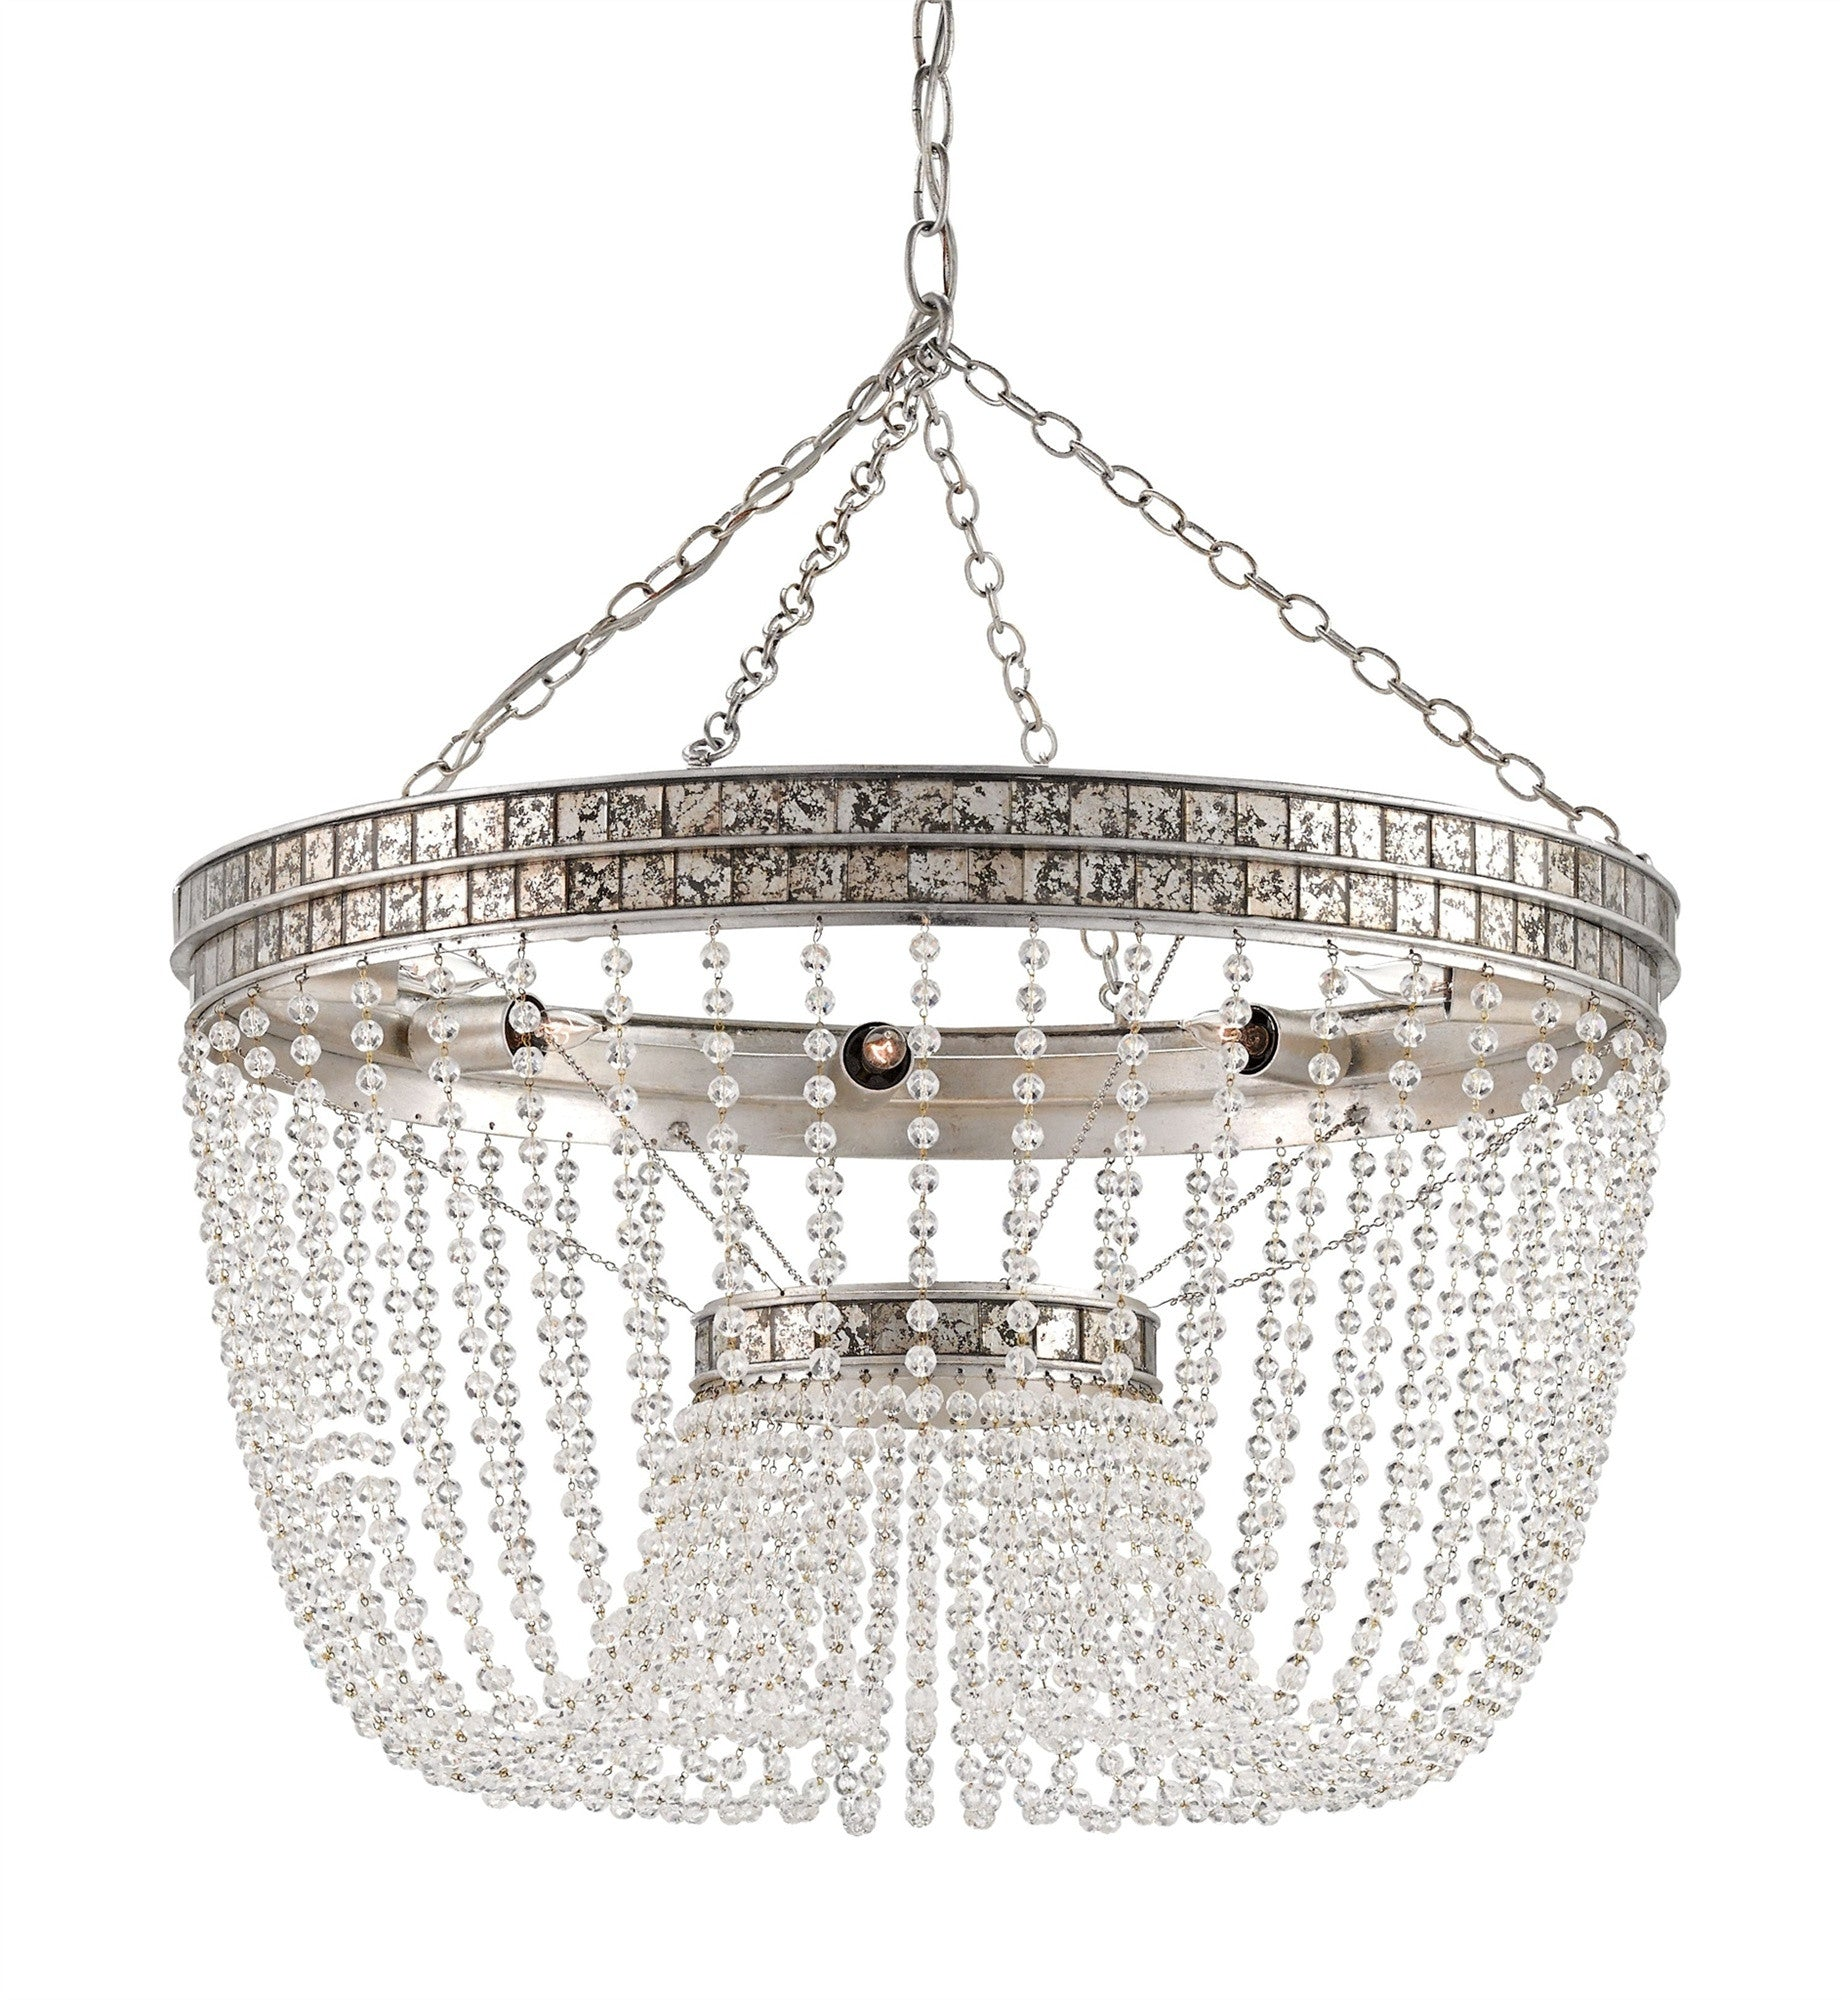 Highbrow Chandelier Design By Currey Amp Company Burke Decor